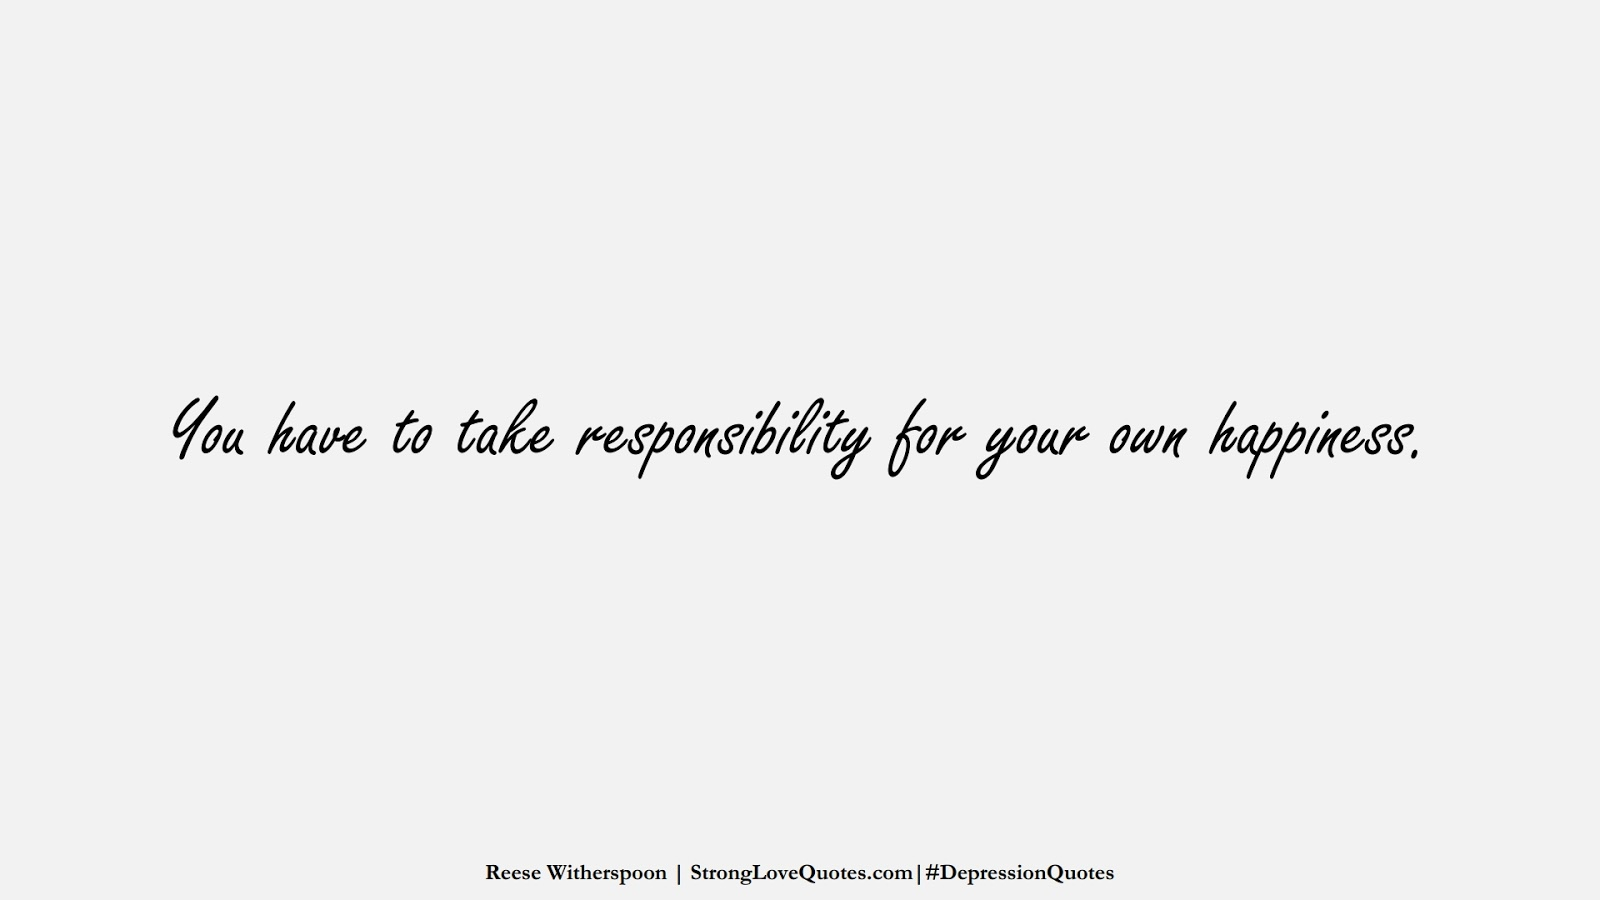 You have to take responsibility for your own happiness. (Reese Witherspoon);  #DepressionQuotes